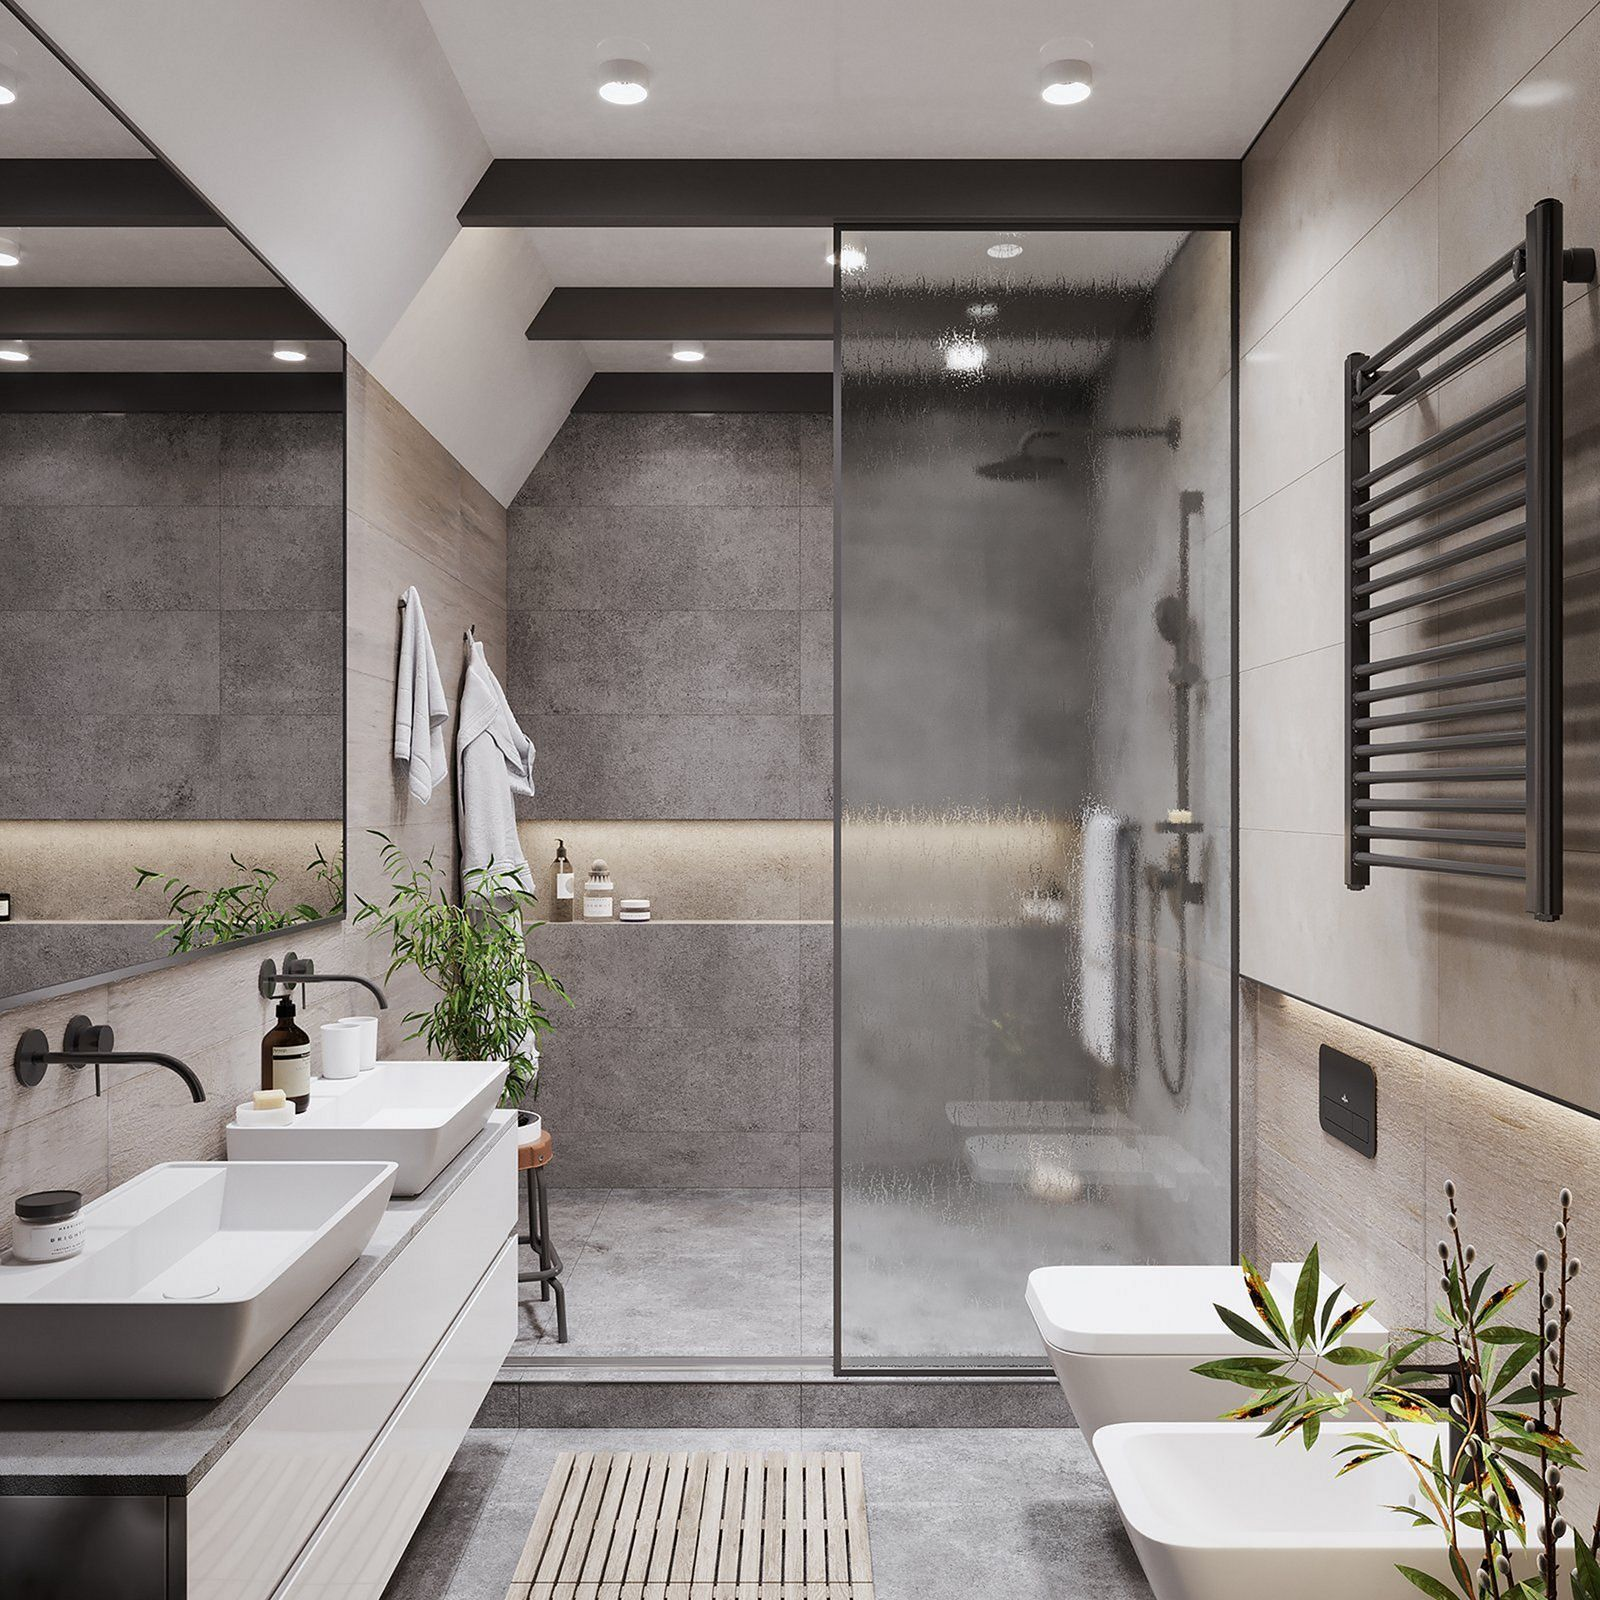 20 Most Beautiful Bathroom Design With Modern Bathtub Ideas